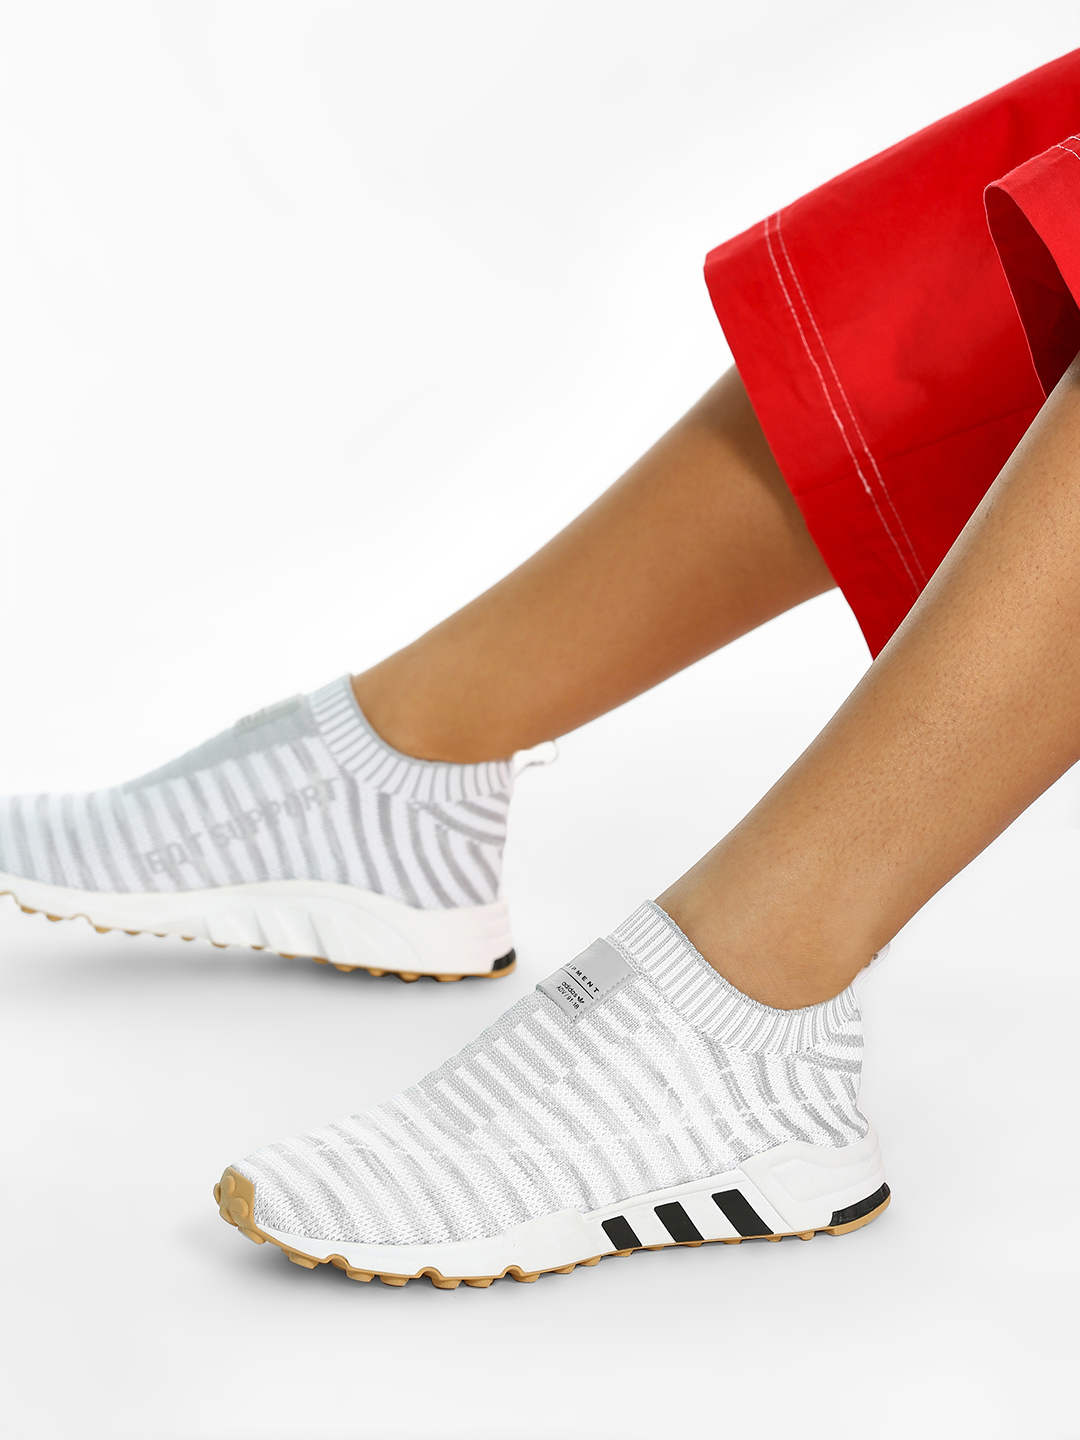 Adidas Originals White EQT Support Sock Primeknit Shoes 1